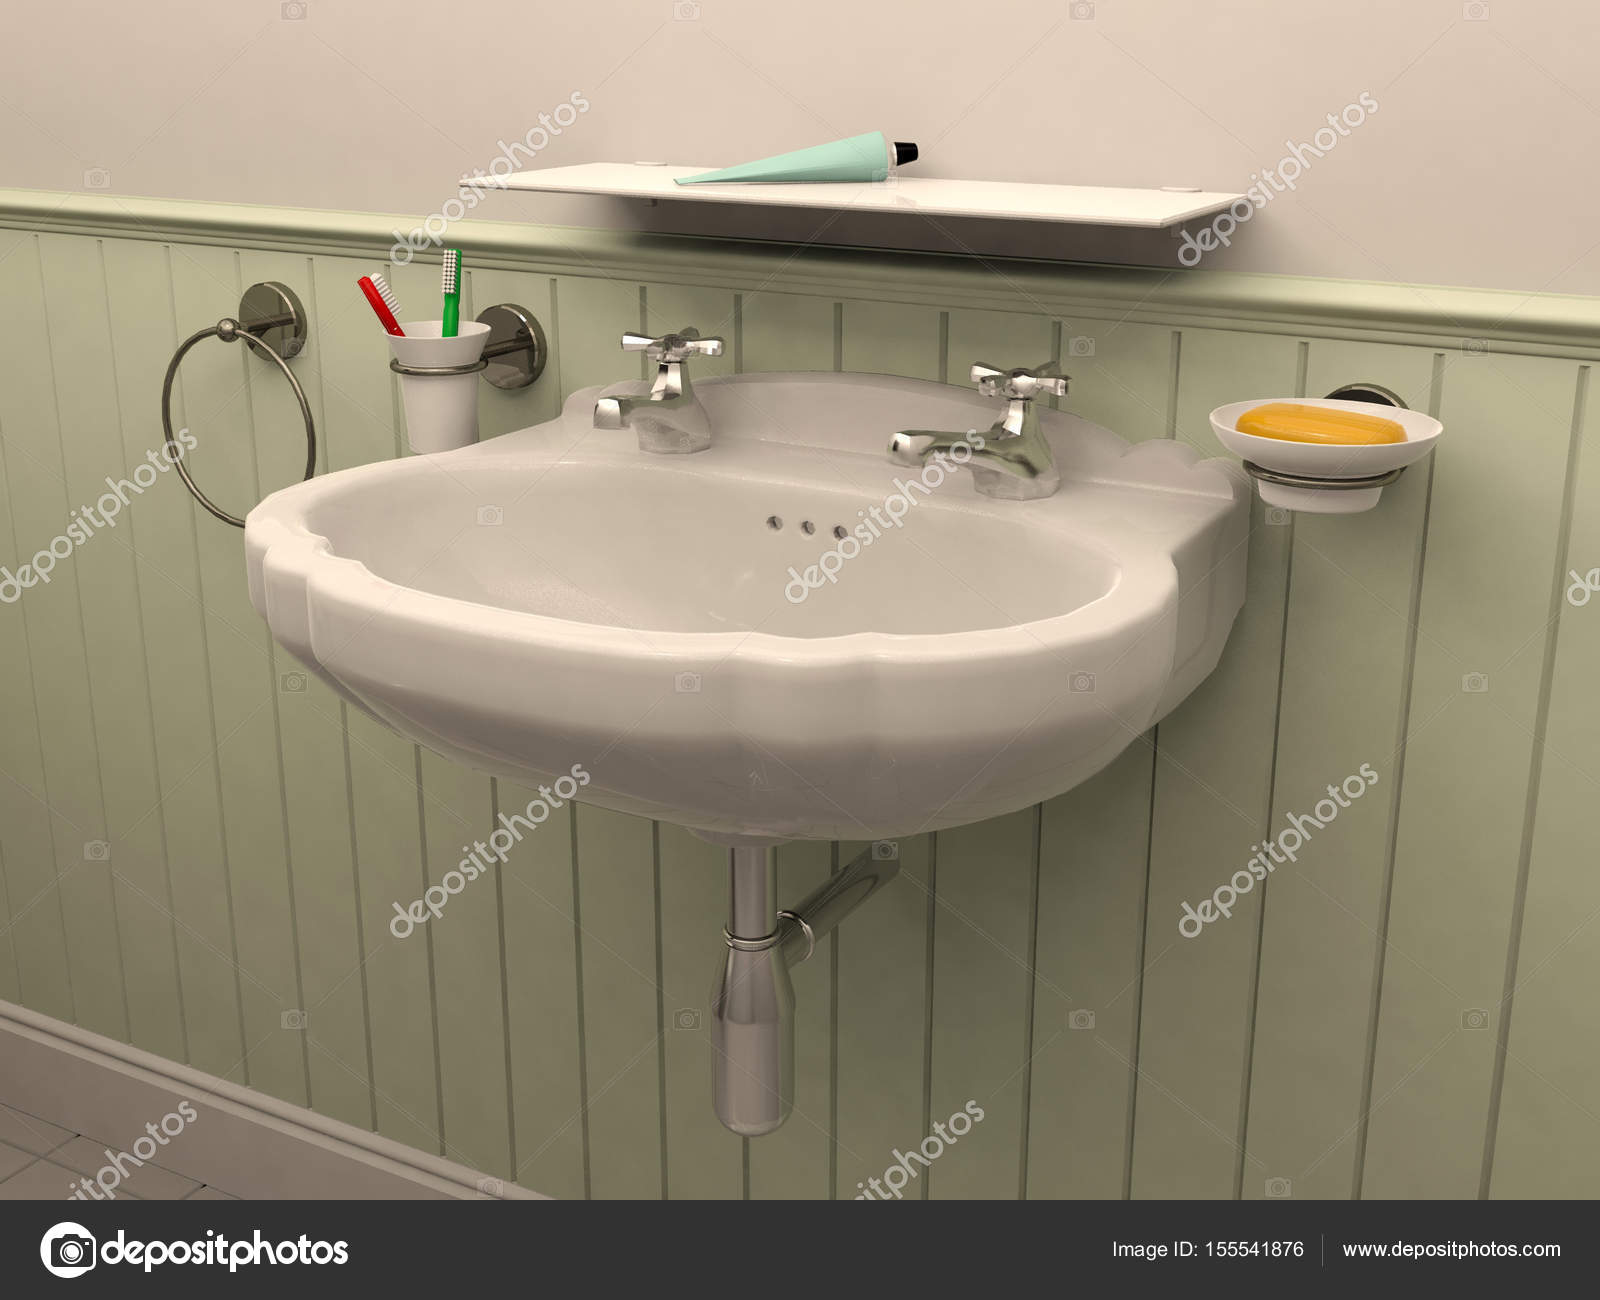 Wasbak in de wc kamer interieur u stockfoto geerati gmail